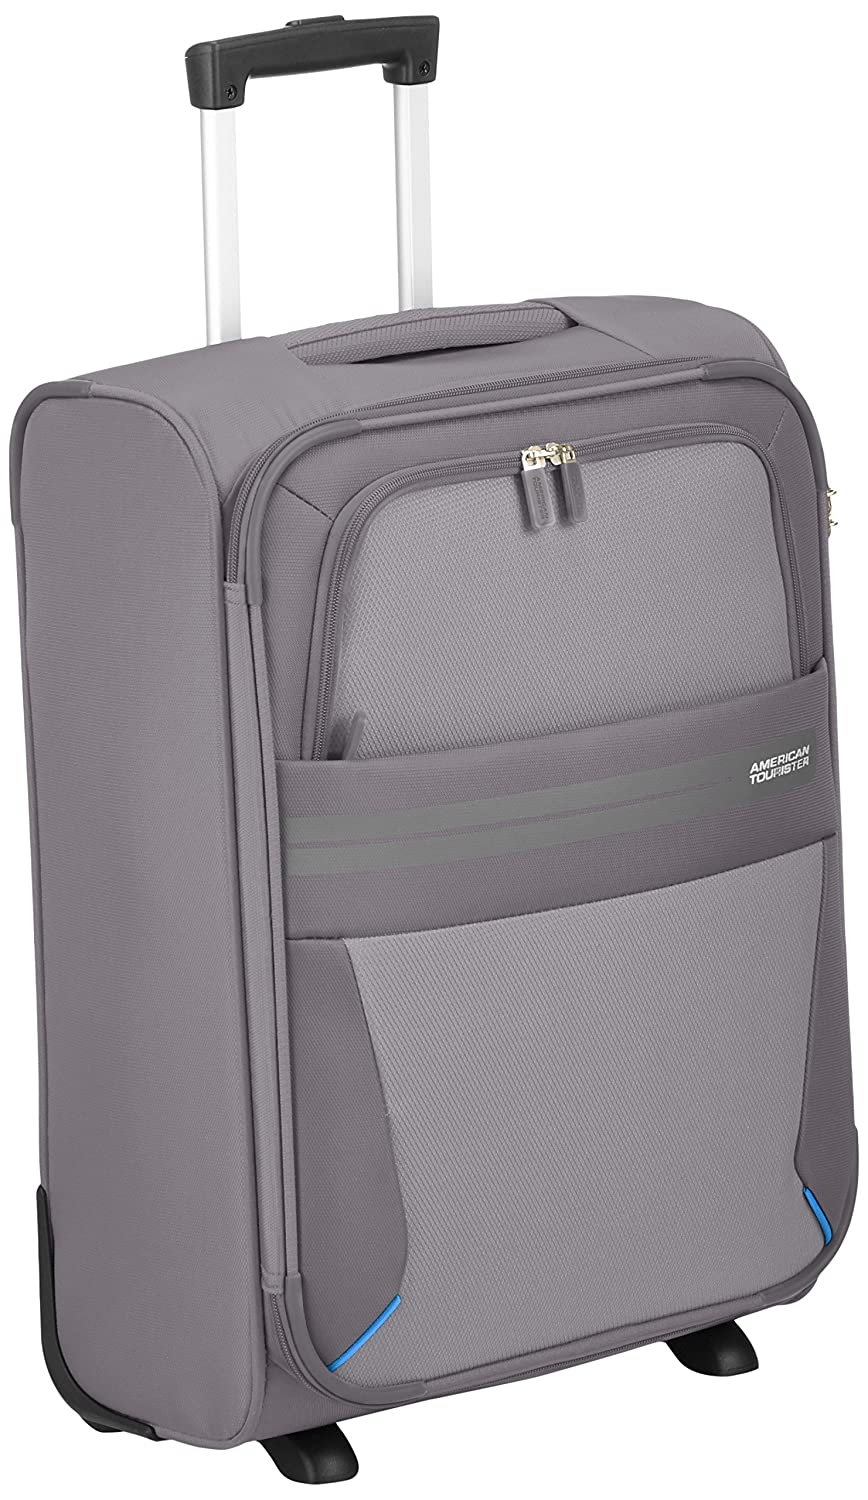 American Tourister Summer Voyager Upright Equipaje de Mano cm  Litros Color